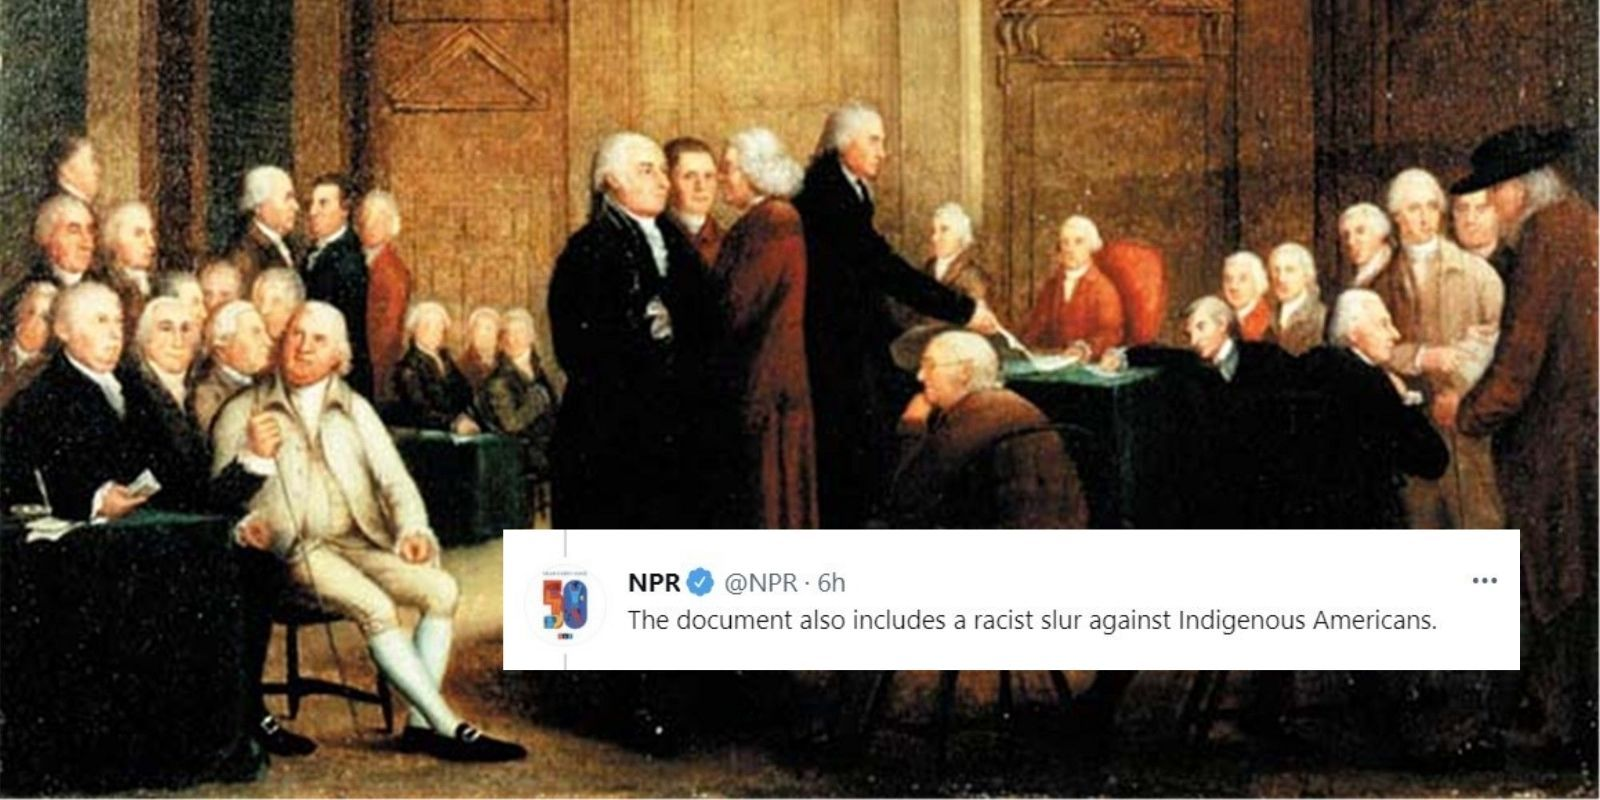 NPR denounces Declaration of Independence on July 4, cites 'racist slur' in editor's note